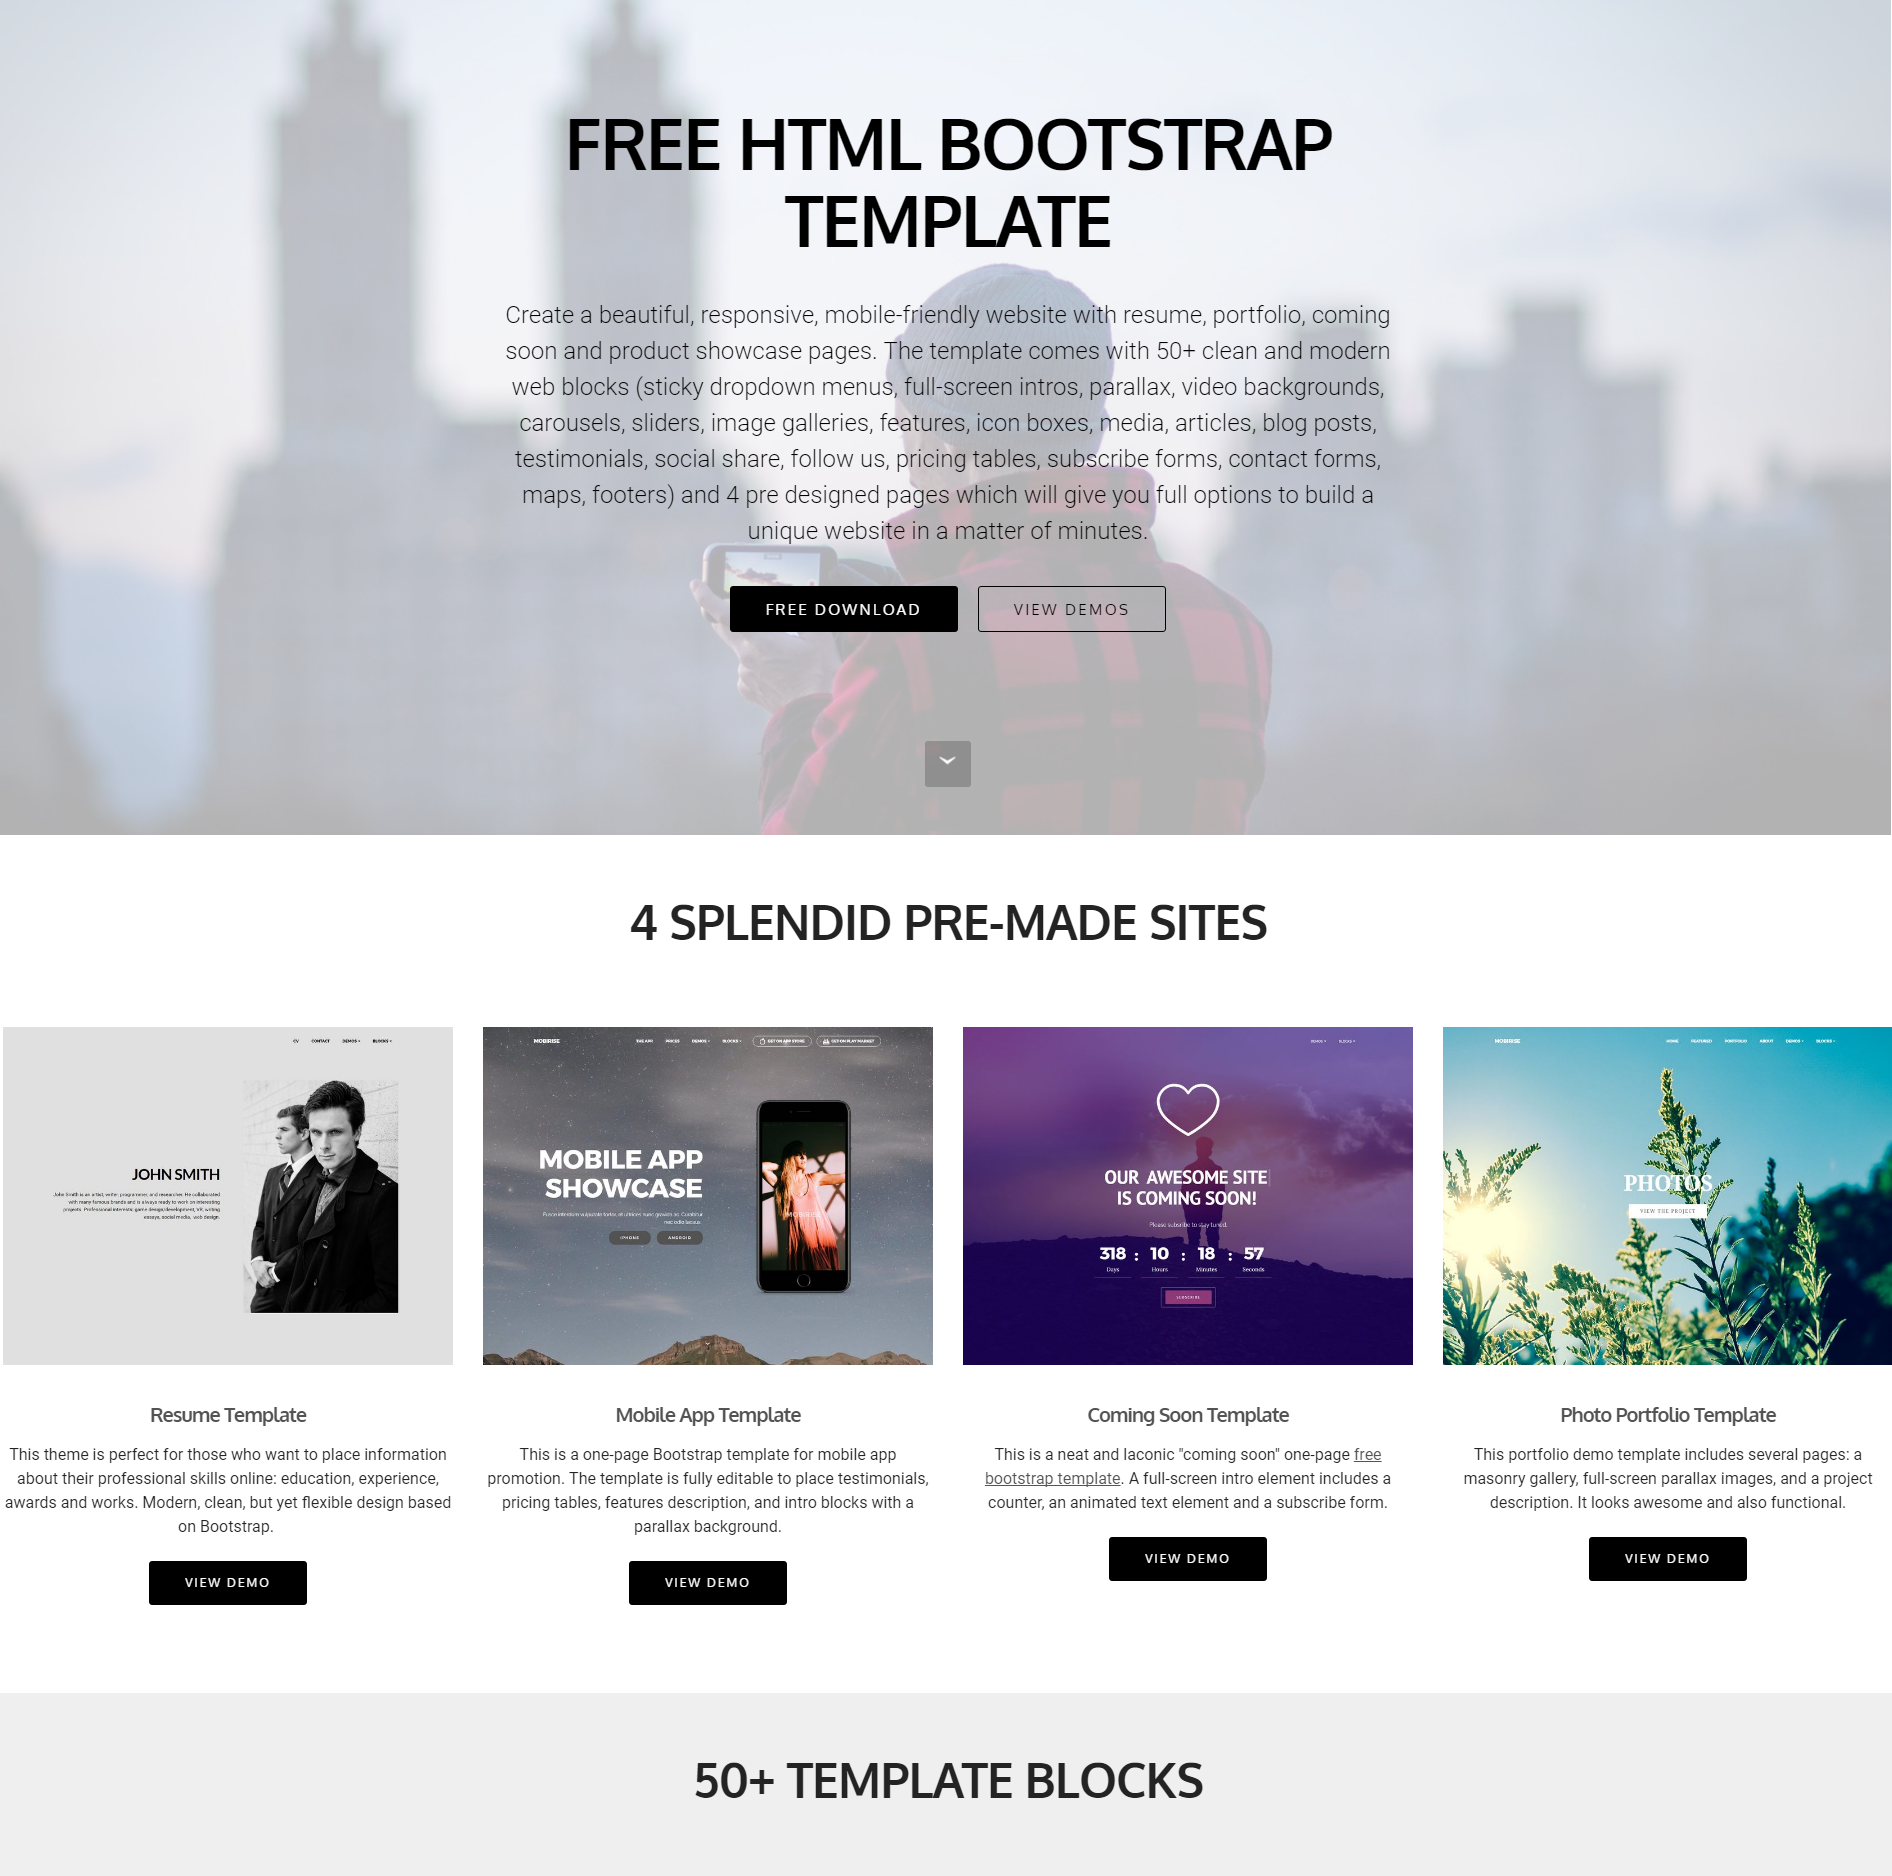 80 free bootstrap templates you can 39 t miss in 2018 for Free bootstrap templates 2017